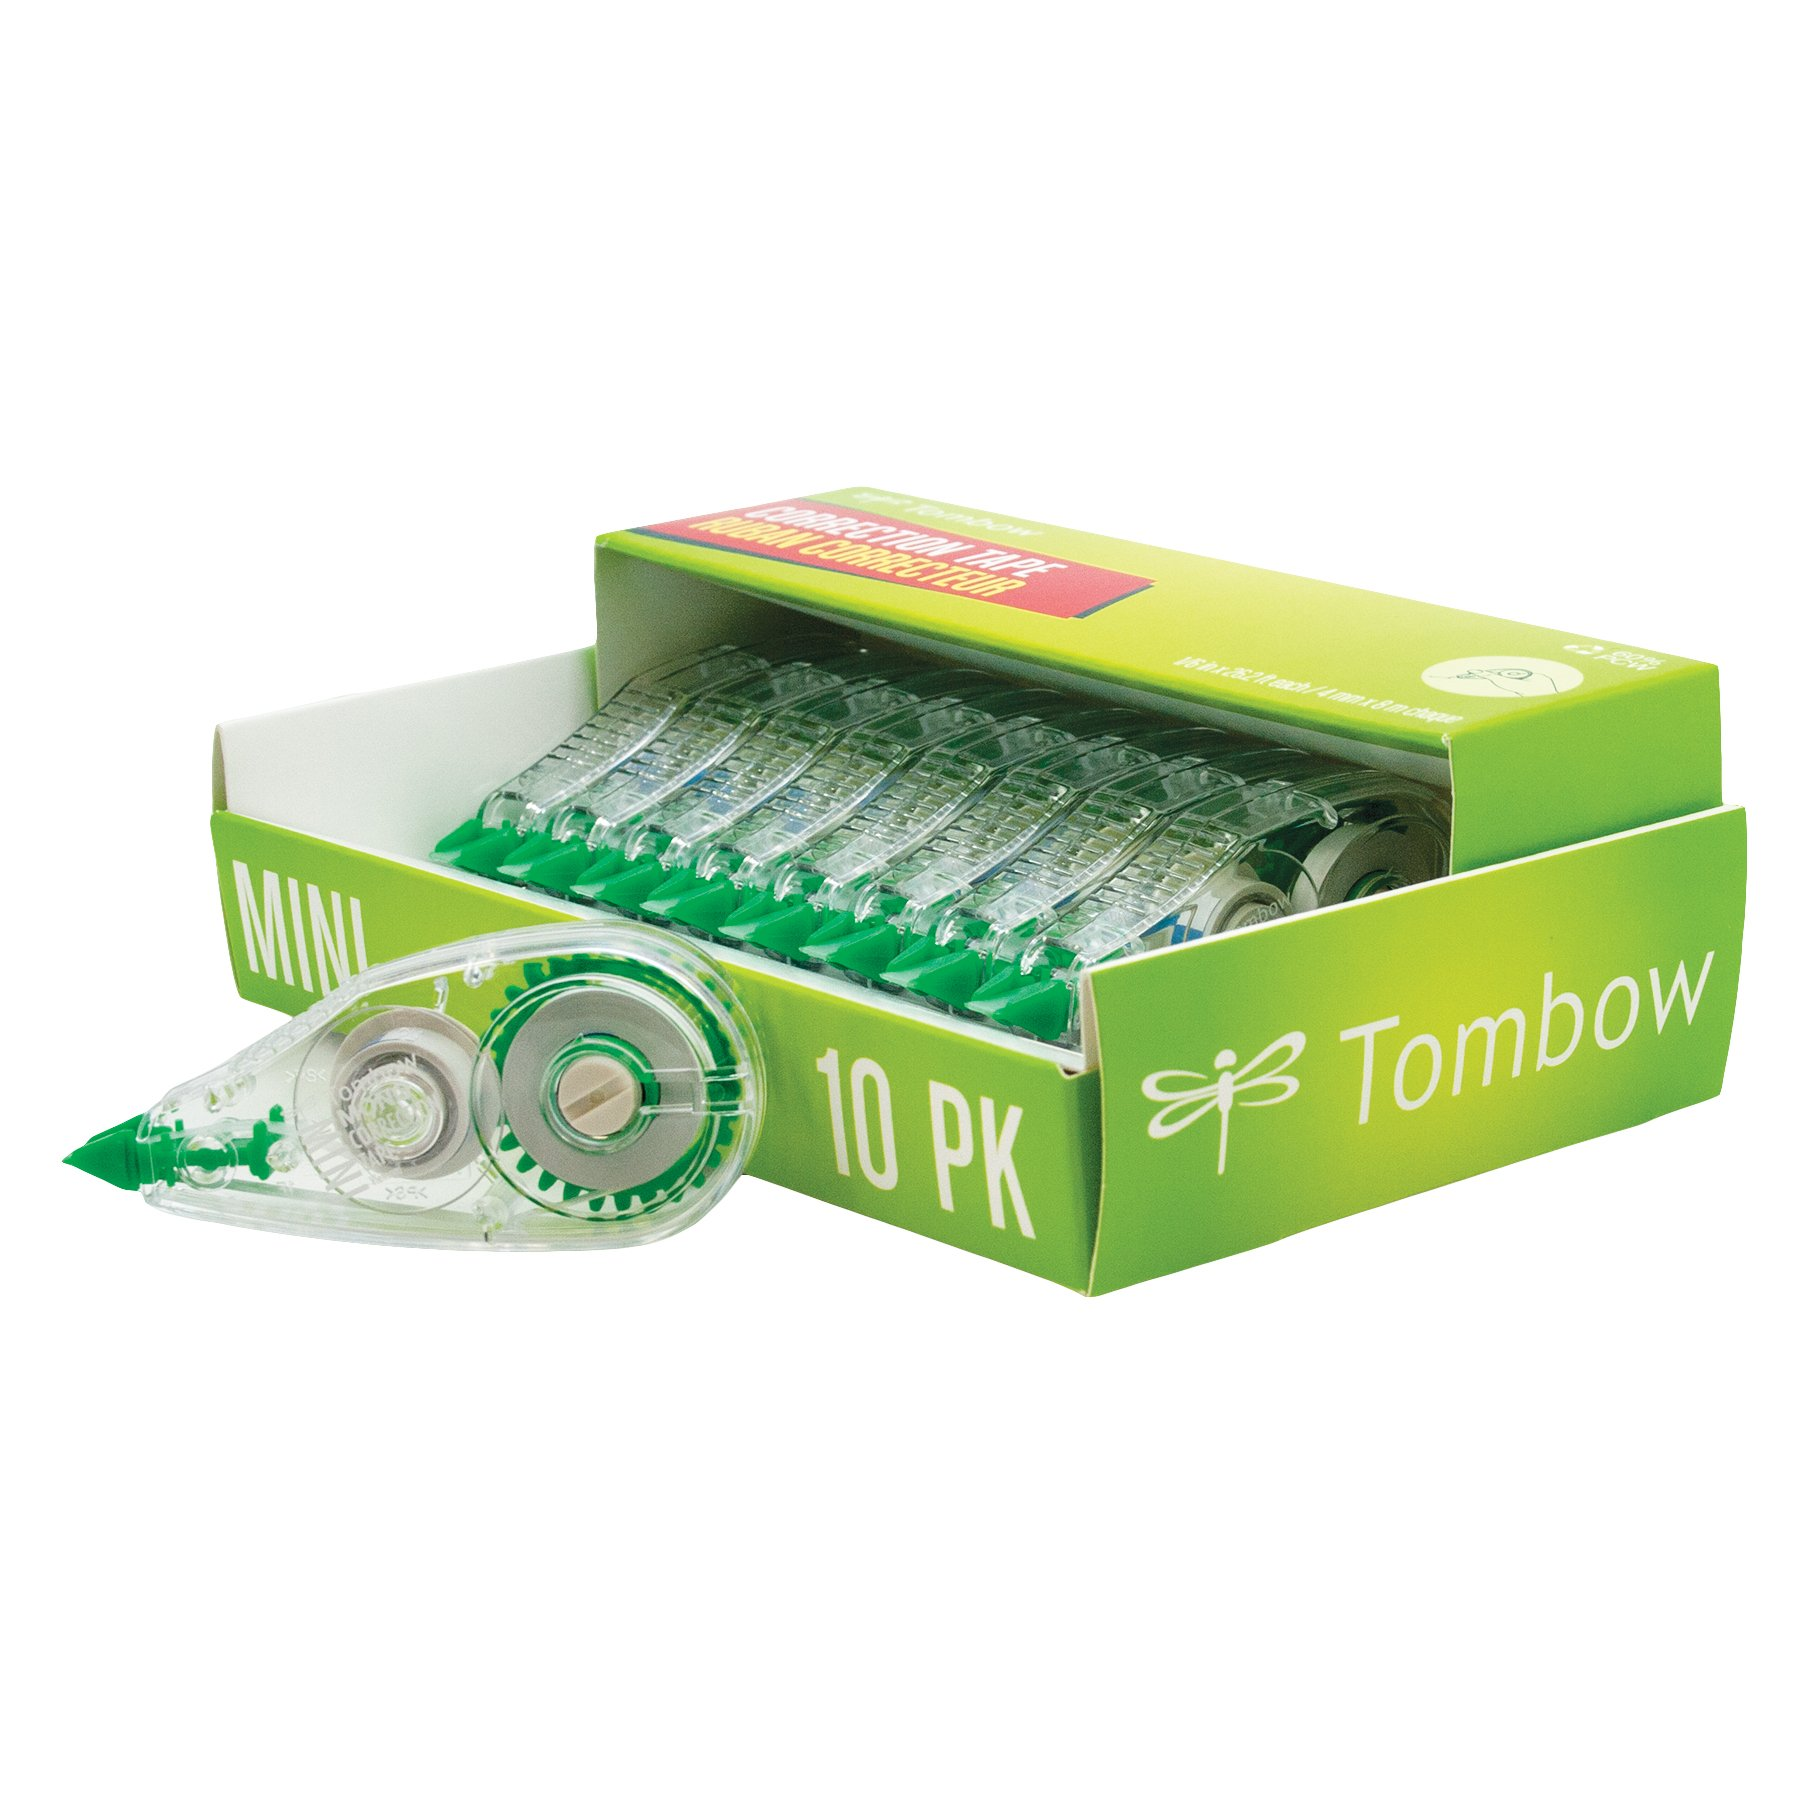 Tombow 68722 MONO Mini Correction Tape, 10-Pack. Easy to Use Applicator for Instant Corrections